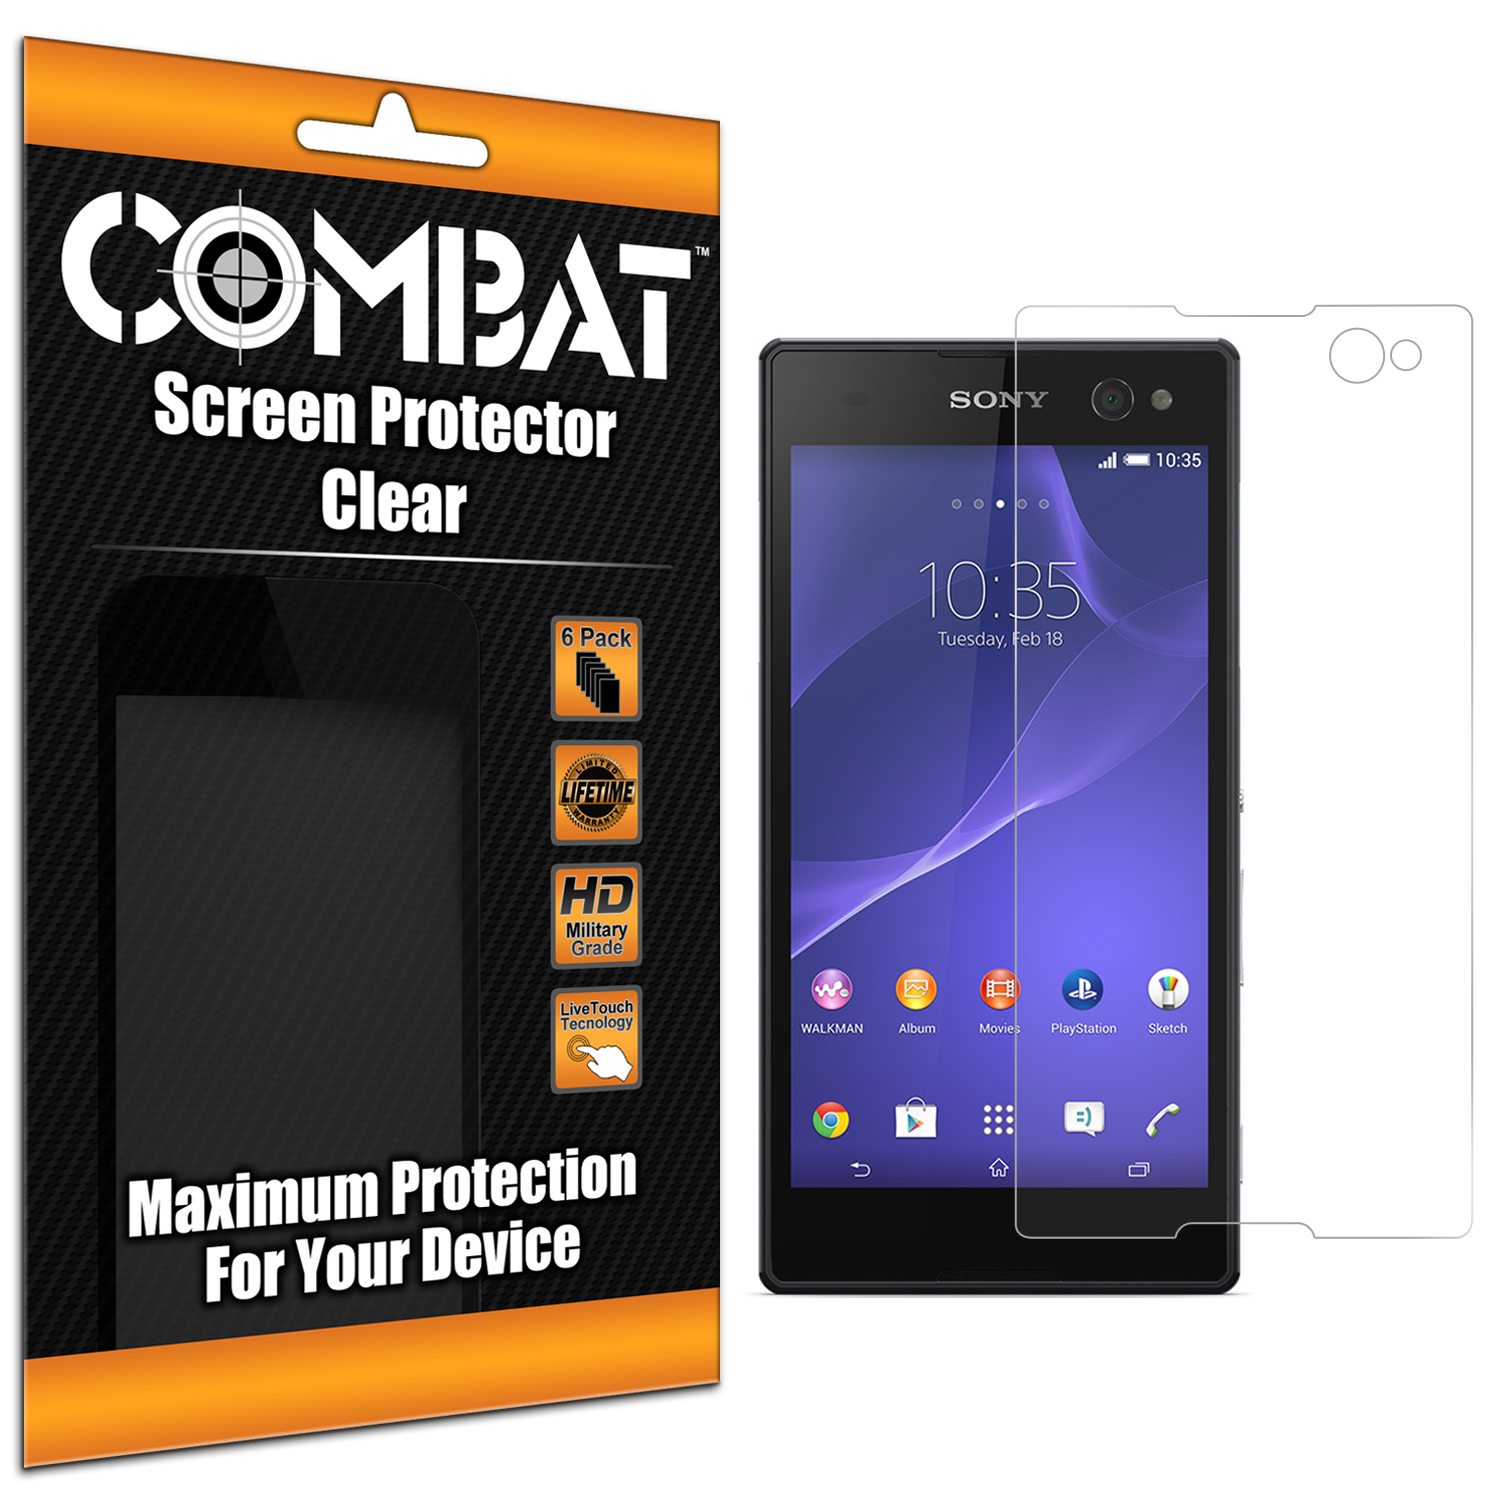 Sony Xperia C3 Combat 6 Pack HD Clear Screen Protector